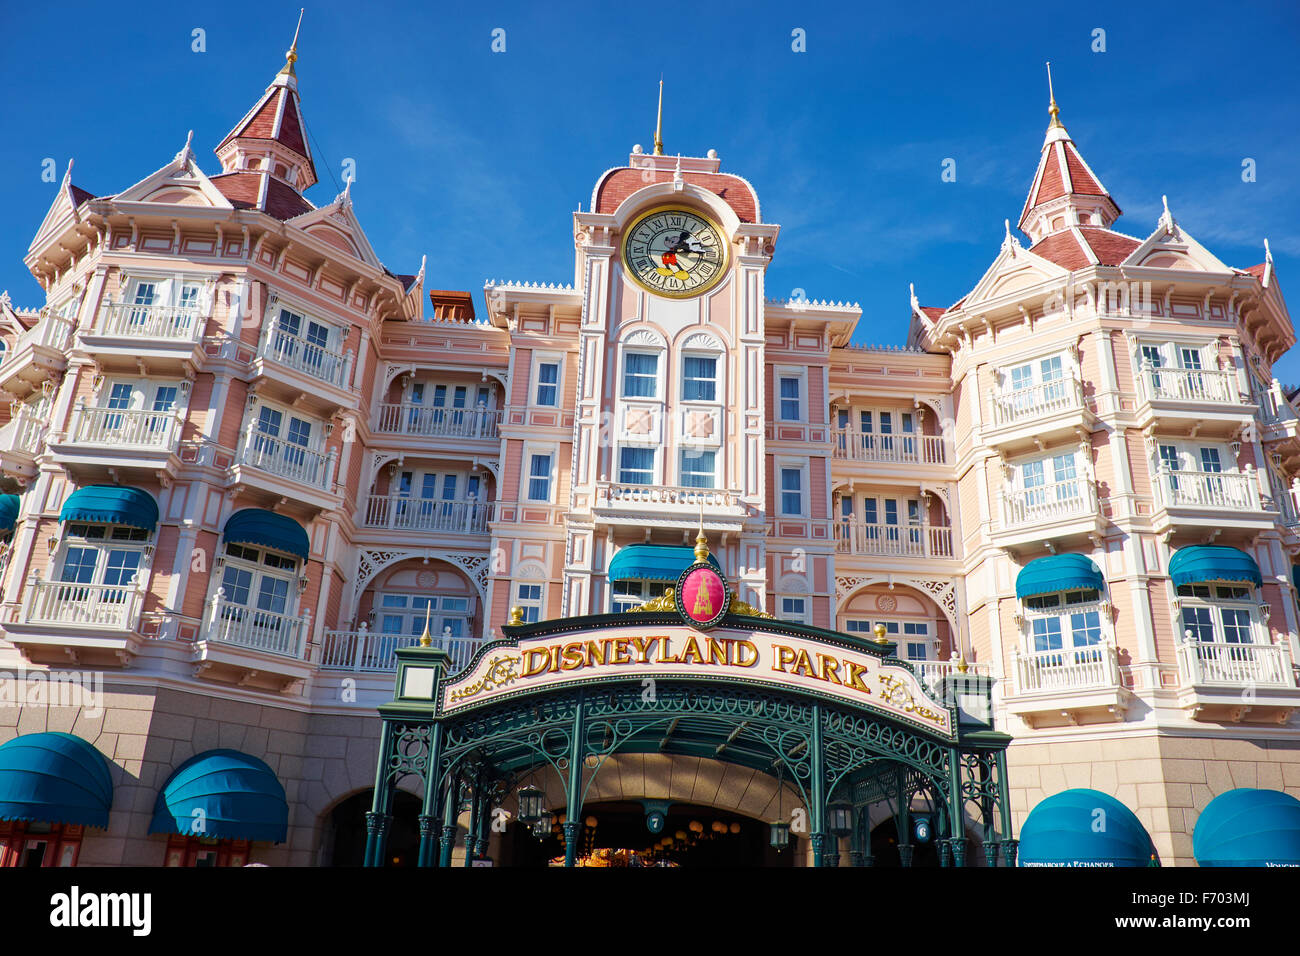 The Disneyland Hotel And Entrance To Disneyland Paris Marne-la-Vallee Stock Photo: 90357362 - Alamy